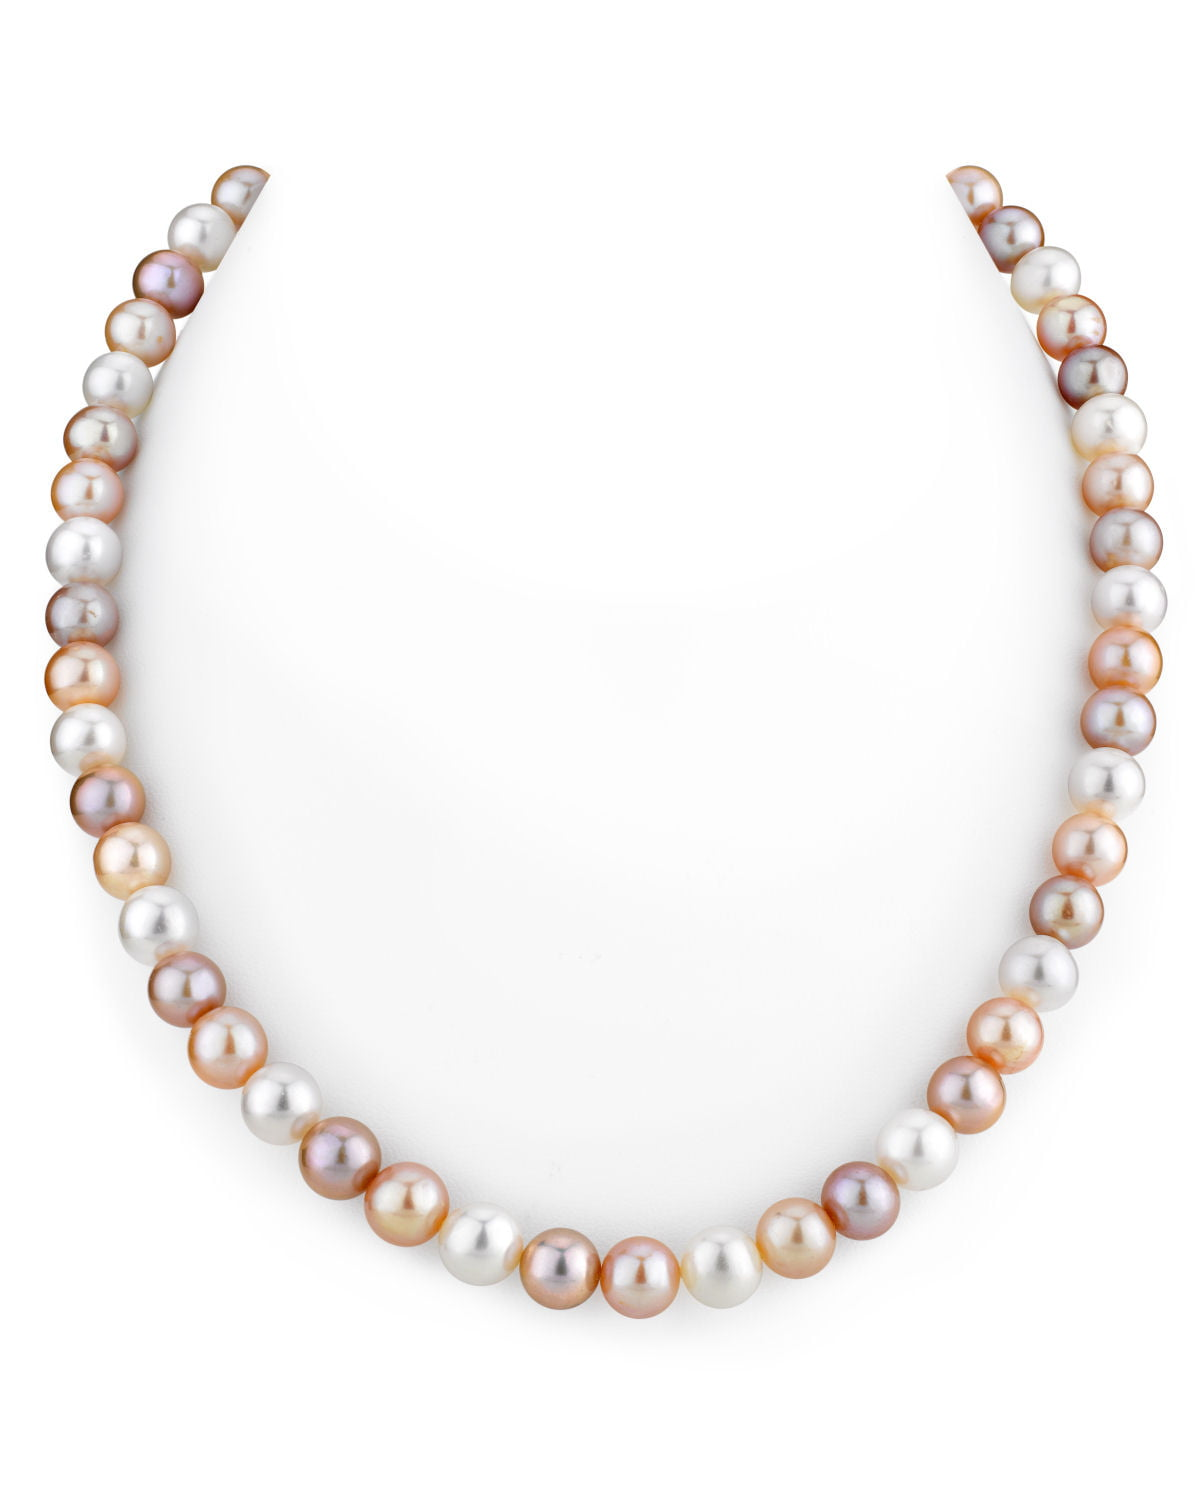 """THE PEARL SOURCE 14K Gold 8-9mm AAAA Quality Multicolor Freshwater Cultured Pearl Necklace for Women in 20"""" Matinee... by The Pearl Source"""